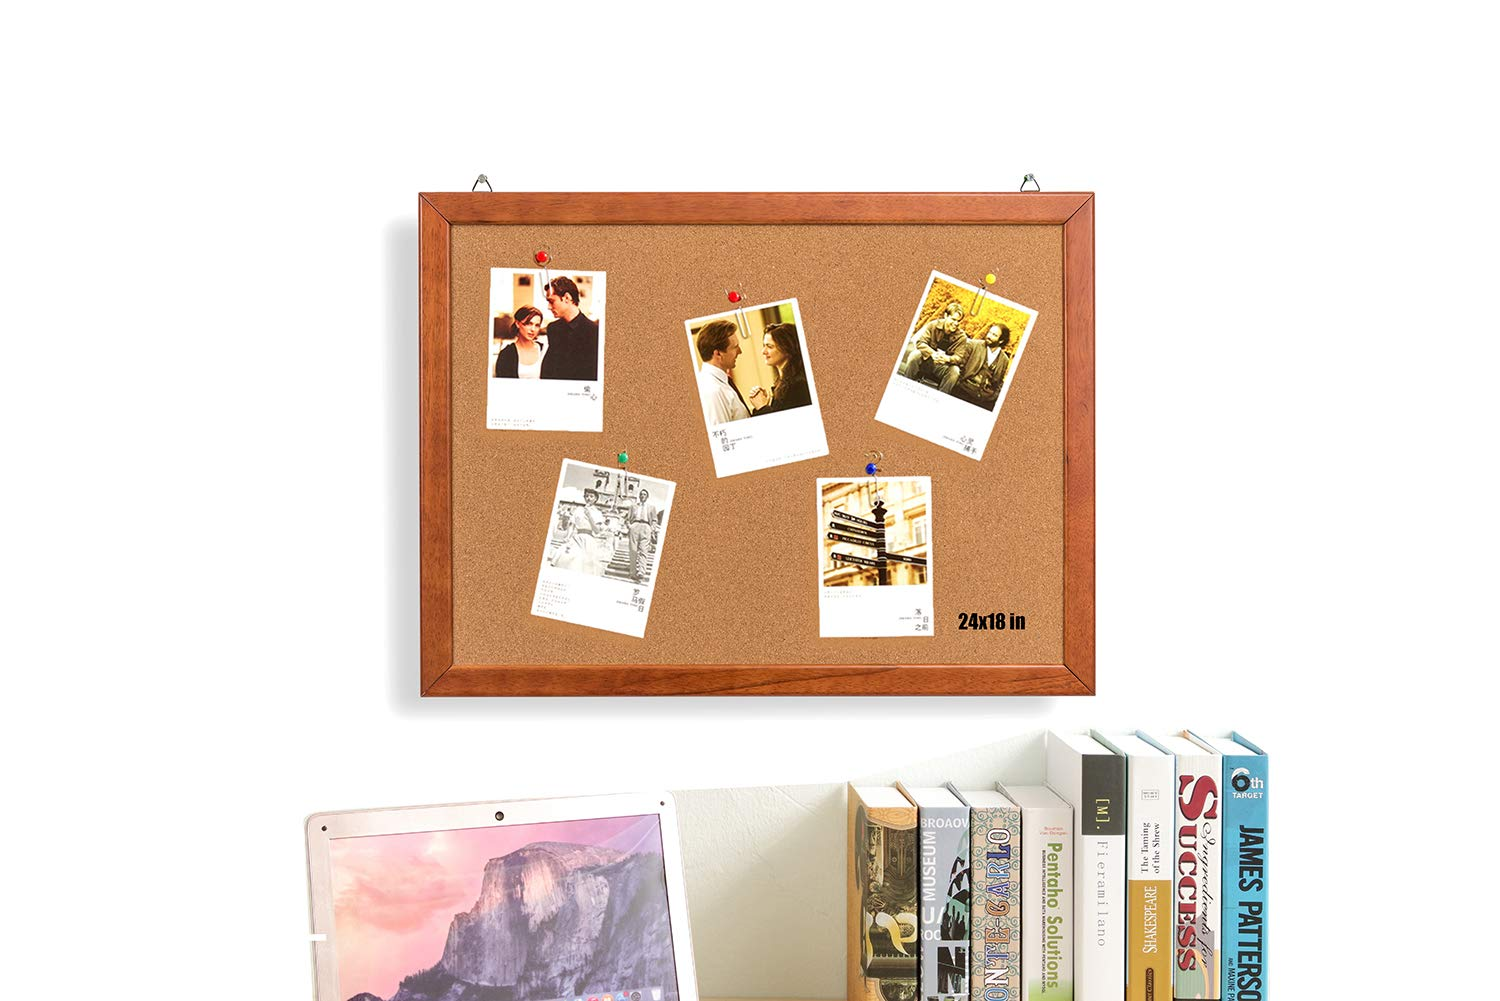 Wood Frame Cork Board Bulletin Board 24 x 18, Mounting Hardware, Push Pins Included Gideal GI_CC1